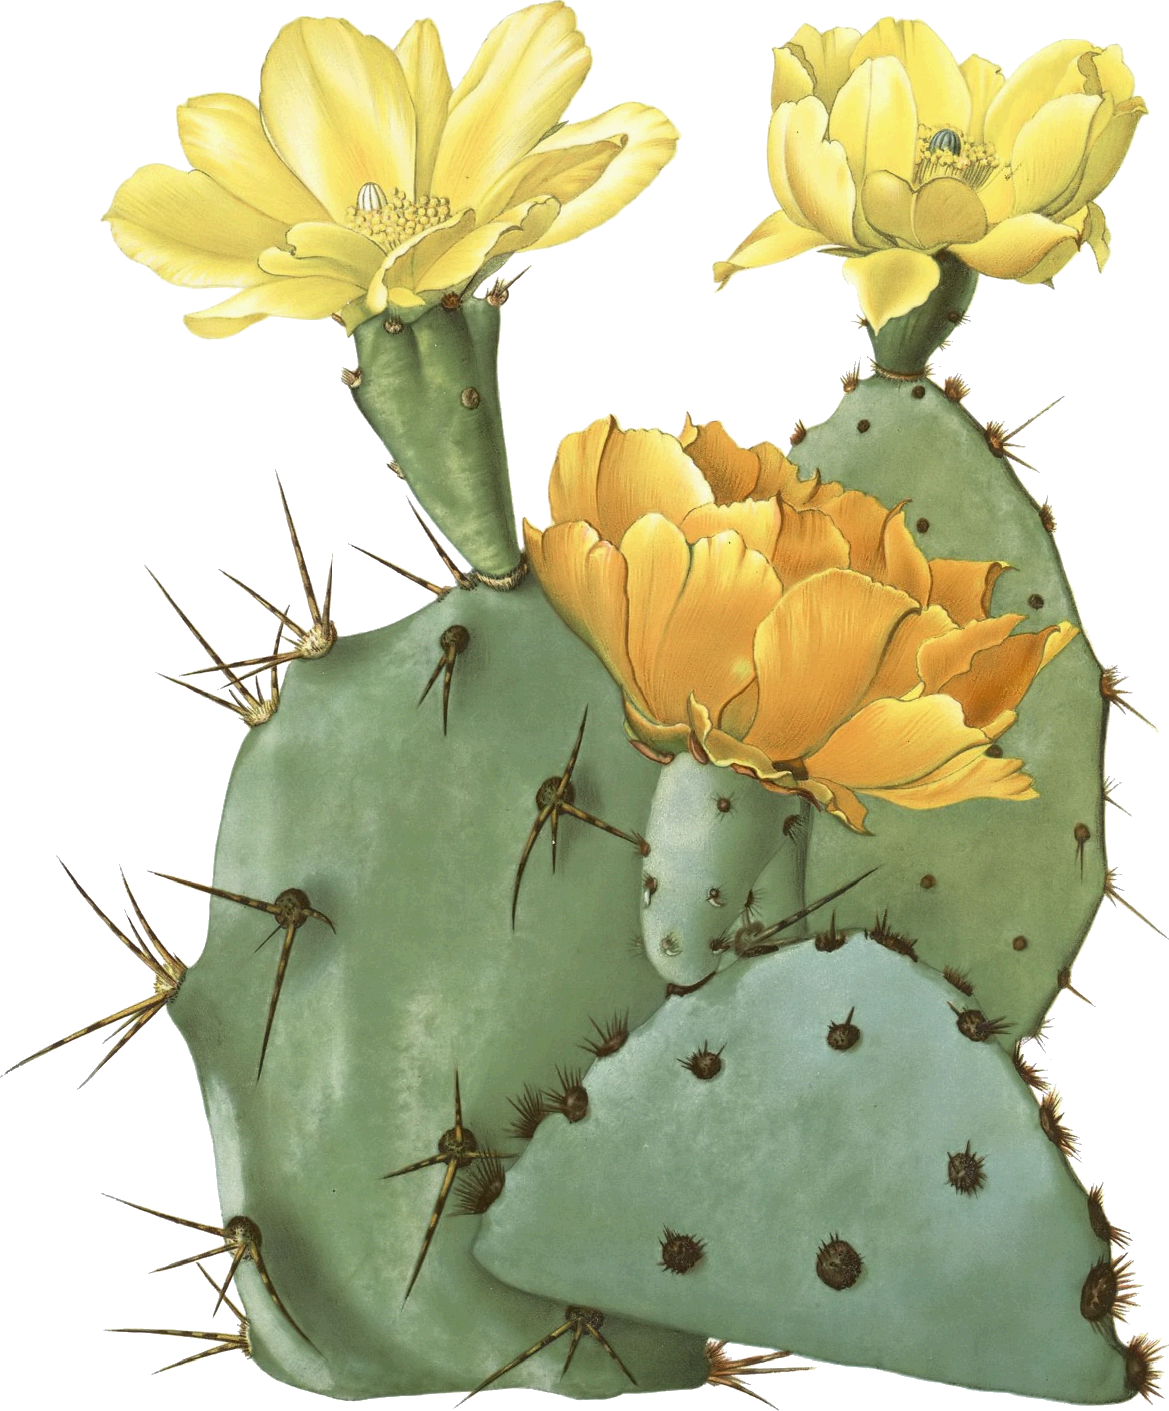 how to use prickly pear cactus